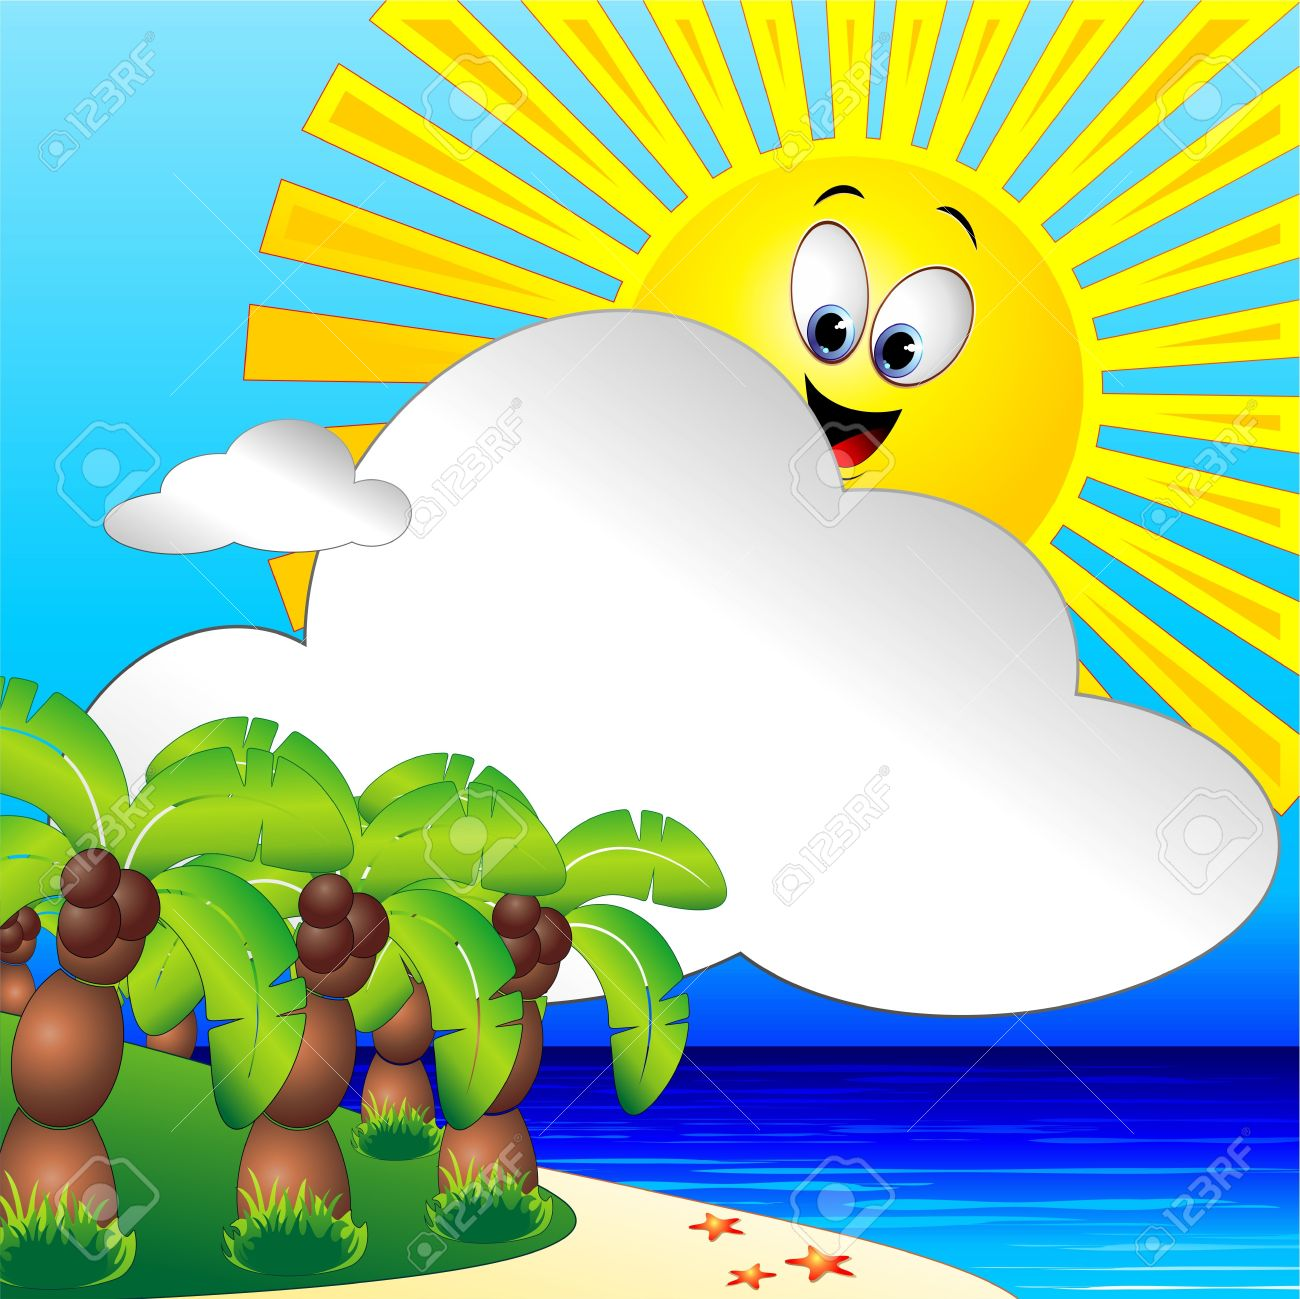 summertime beach clipart #9